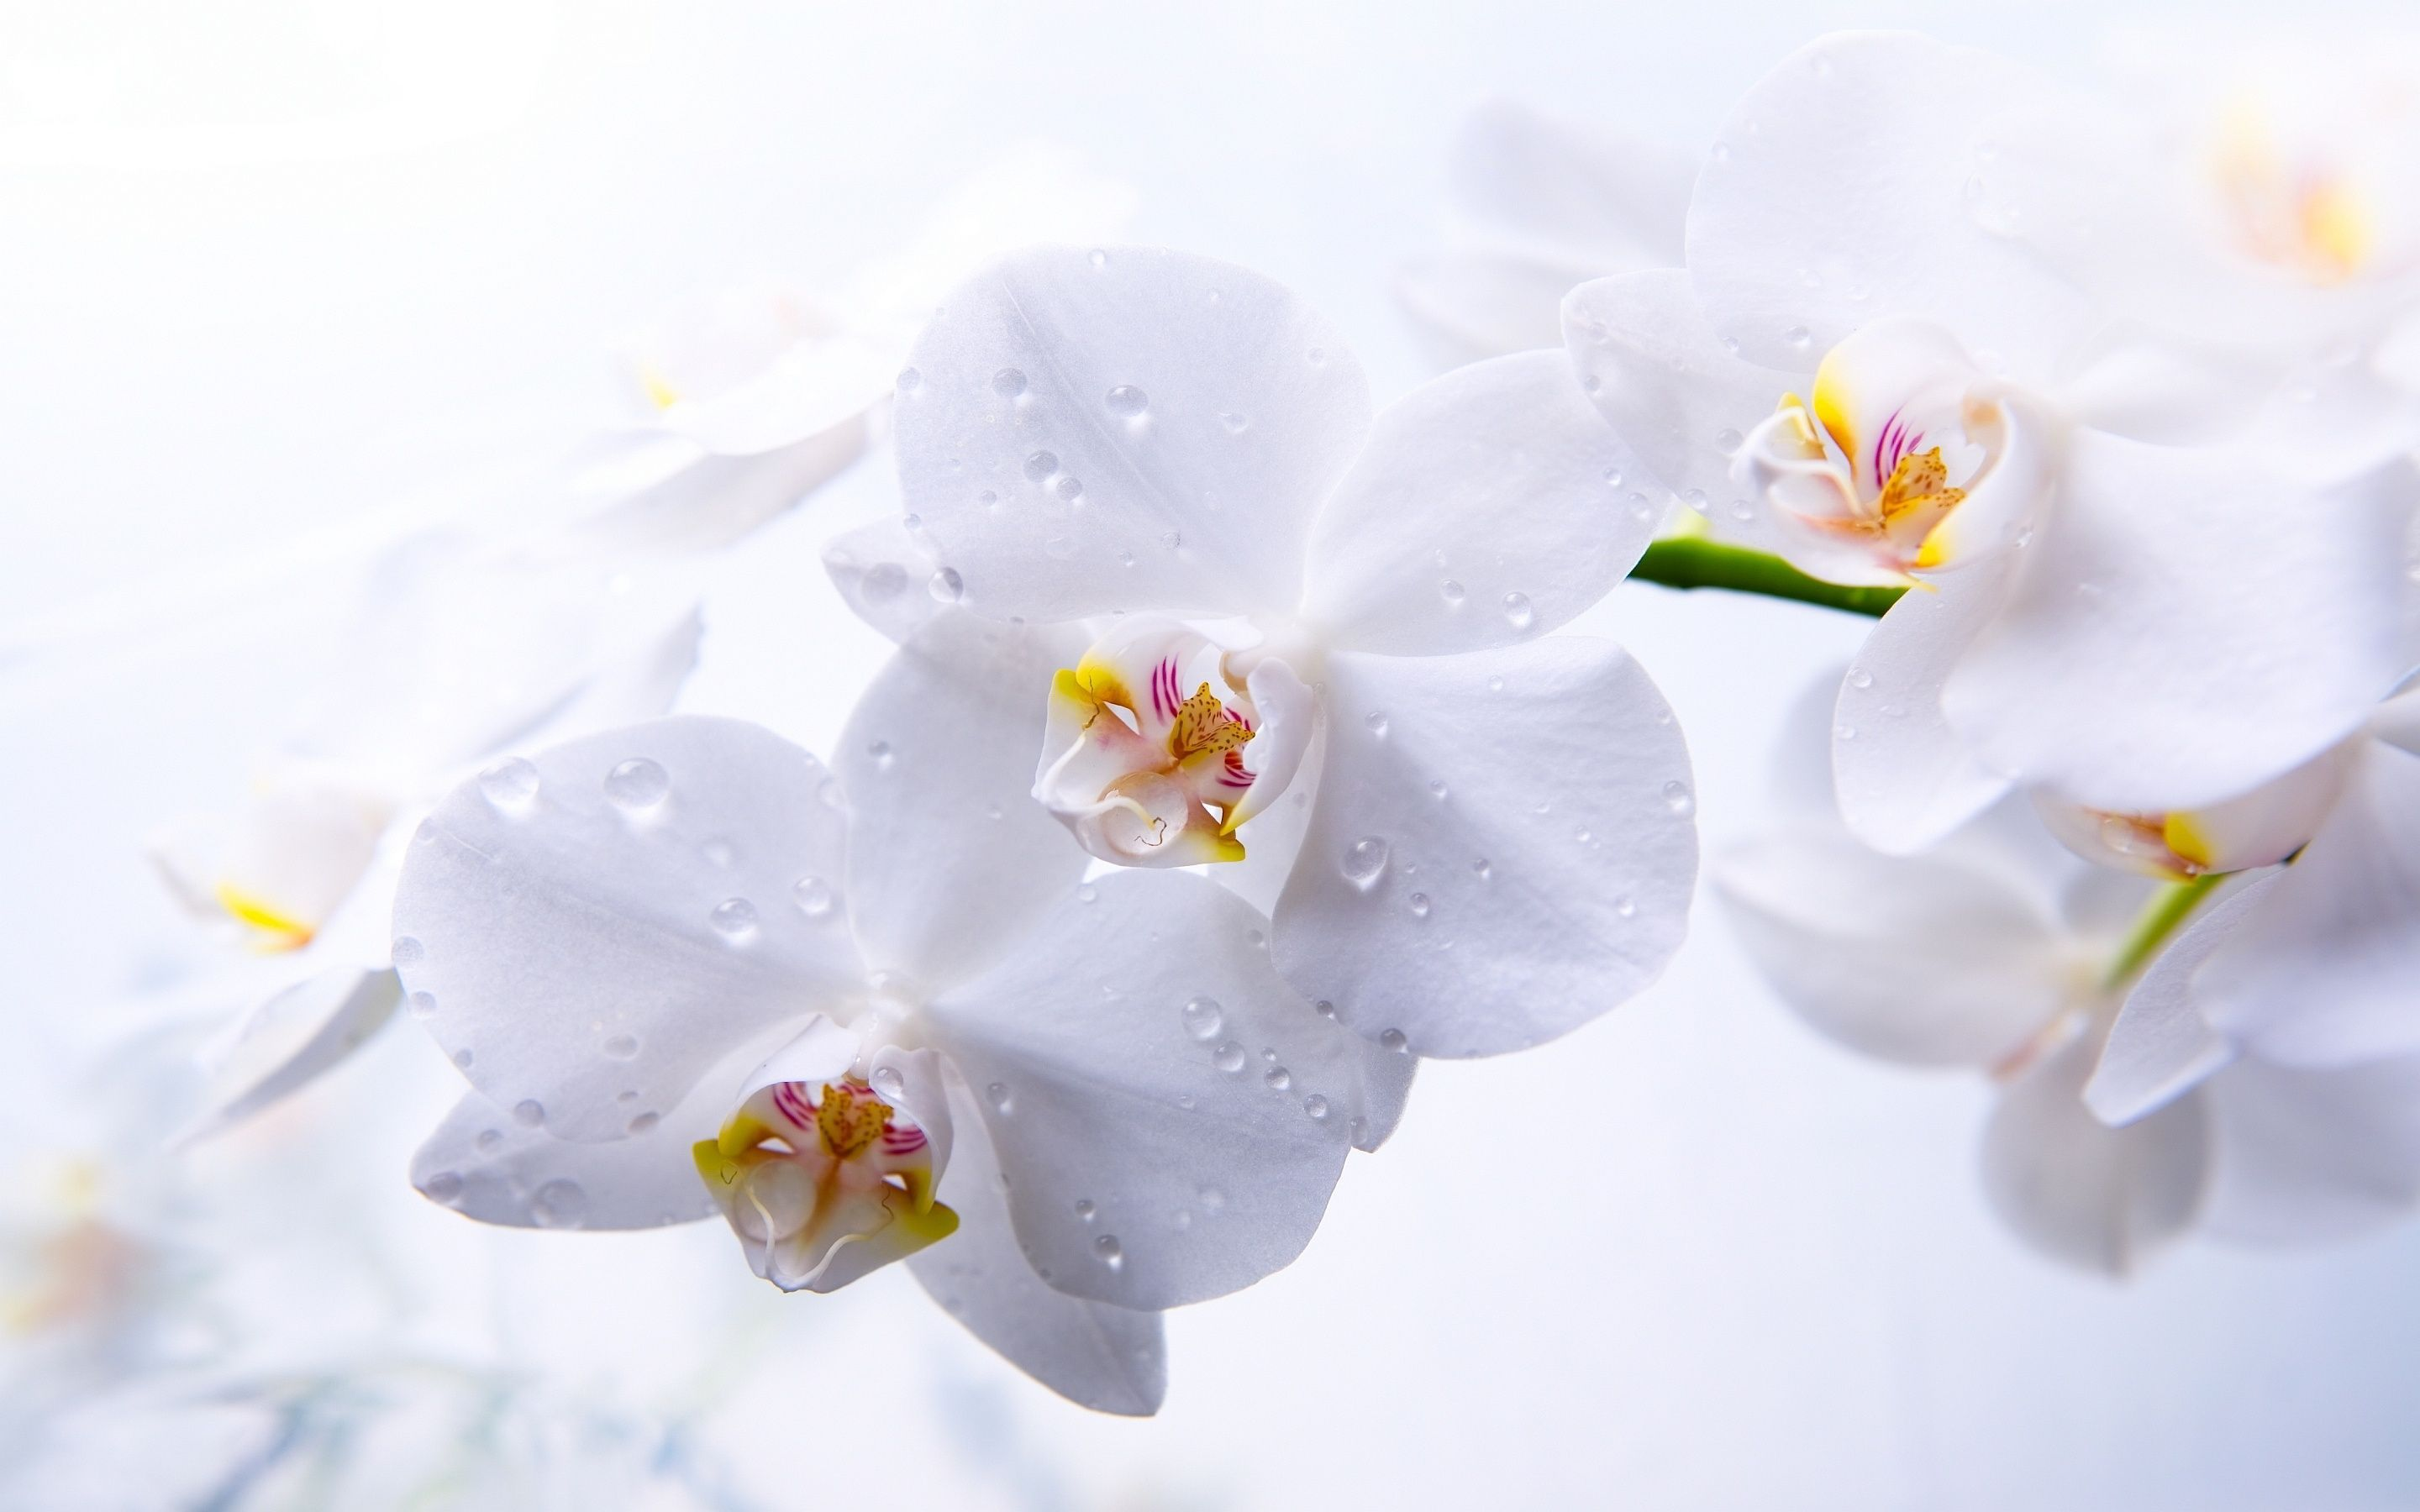 White Orchid Wallpapers Wallpaper Cave Цветки орхидеи